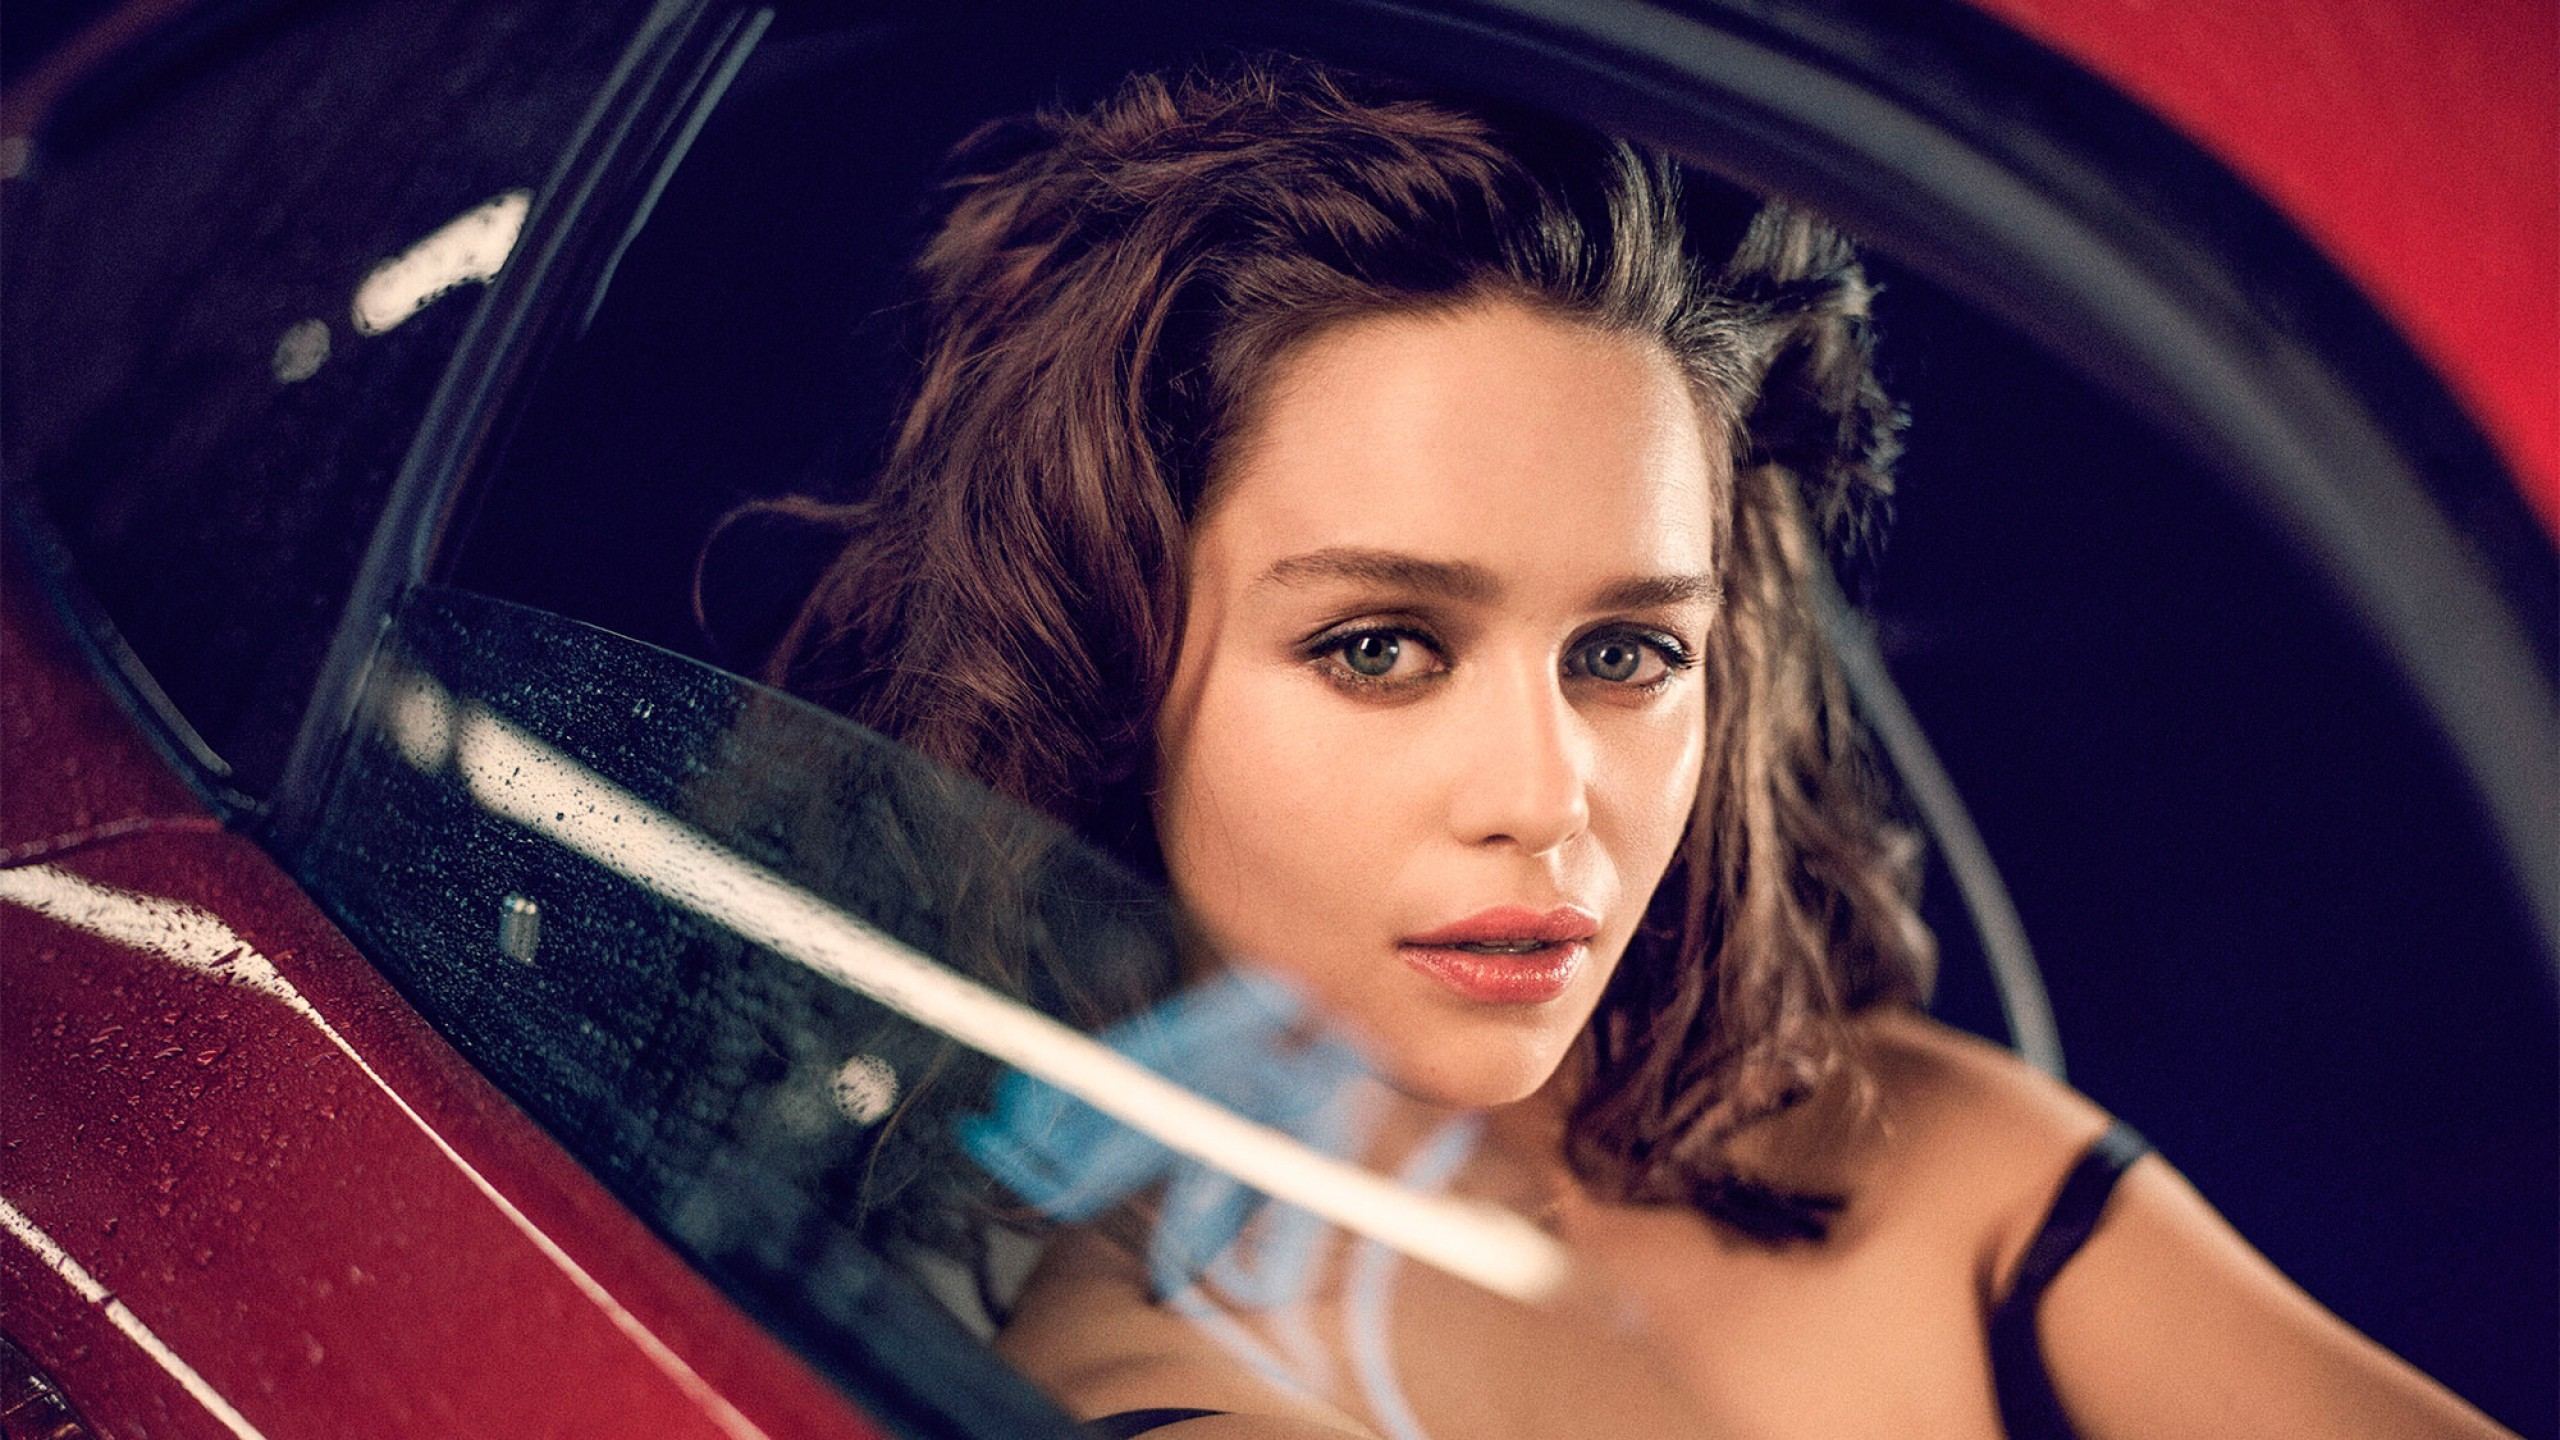 Lovely Emilia Clarke Beauty Face Style Look With Red Car Background Mobile Hd Wallpaper Free